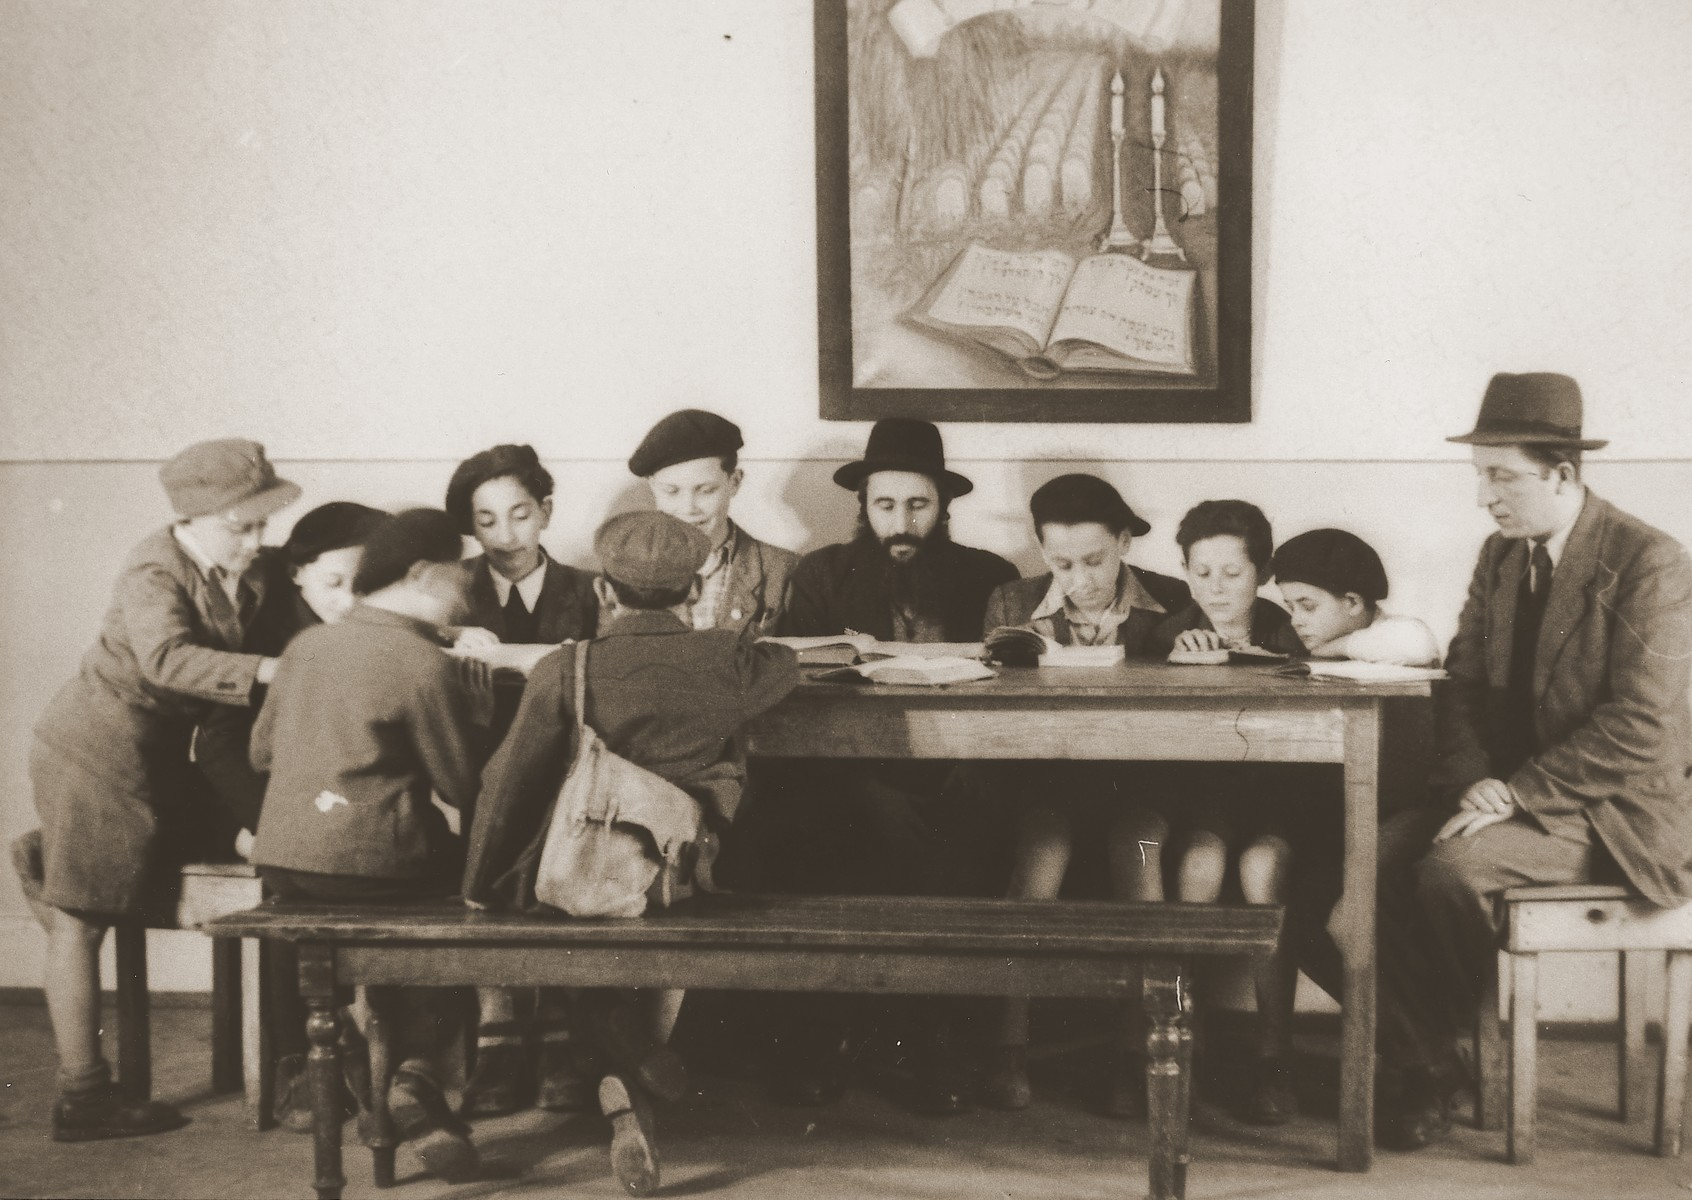 """A rabbi teaches a group of boys in a cheder [religious elementary school] in the Stuttgart DP camp.  To right of rabbi is Lova Warszaczyk.  Next to him is Binstock  One image from the Stuttgart Jewish DP camp album entitled, """"Jidiszer D.P. Center UNRRA--P.C.IRO in Stuttgart,"""" compiled and photographed by Alexander Fiedel and dedicated to Moses Kornberg, head of the commissary."""